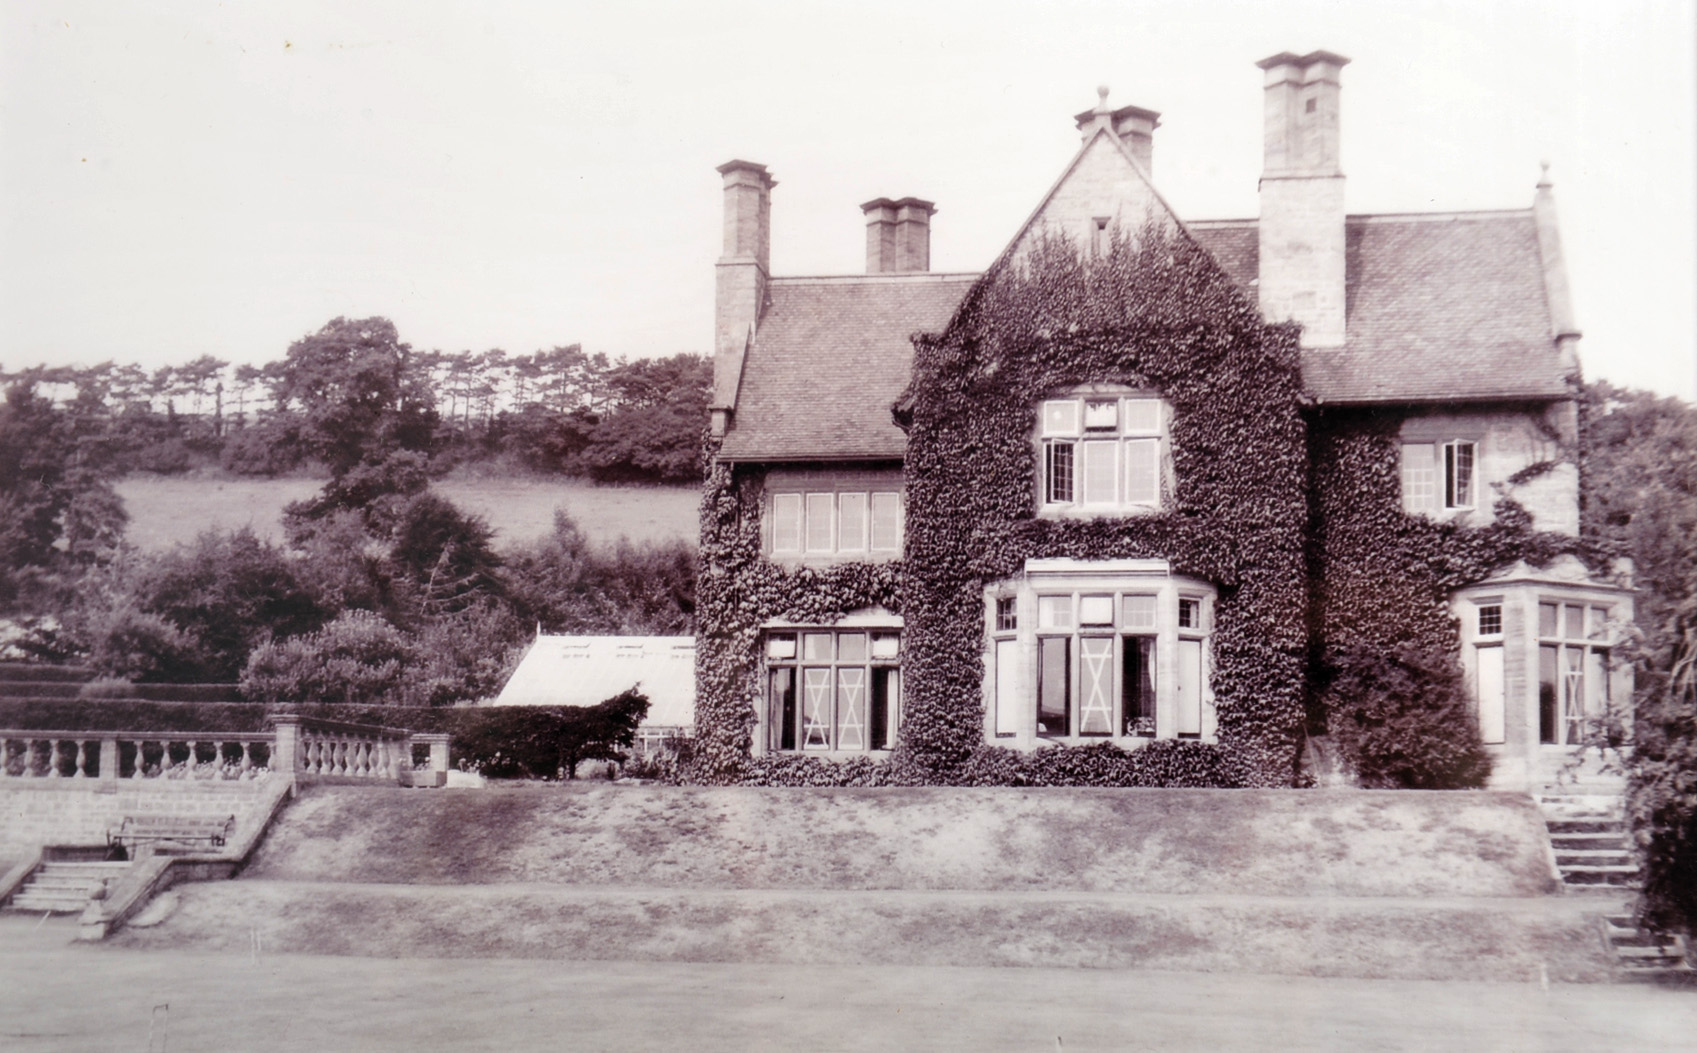 The Gables during the 2nd world war